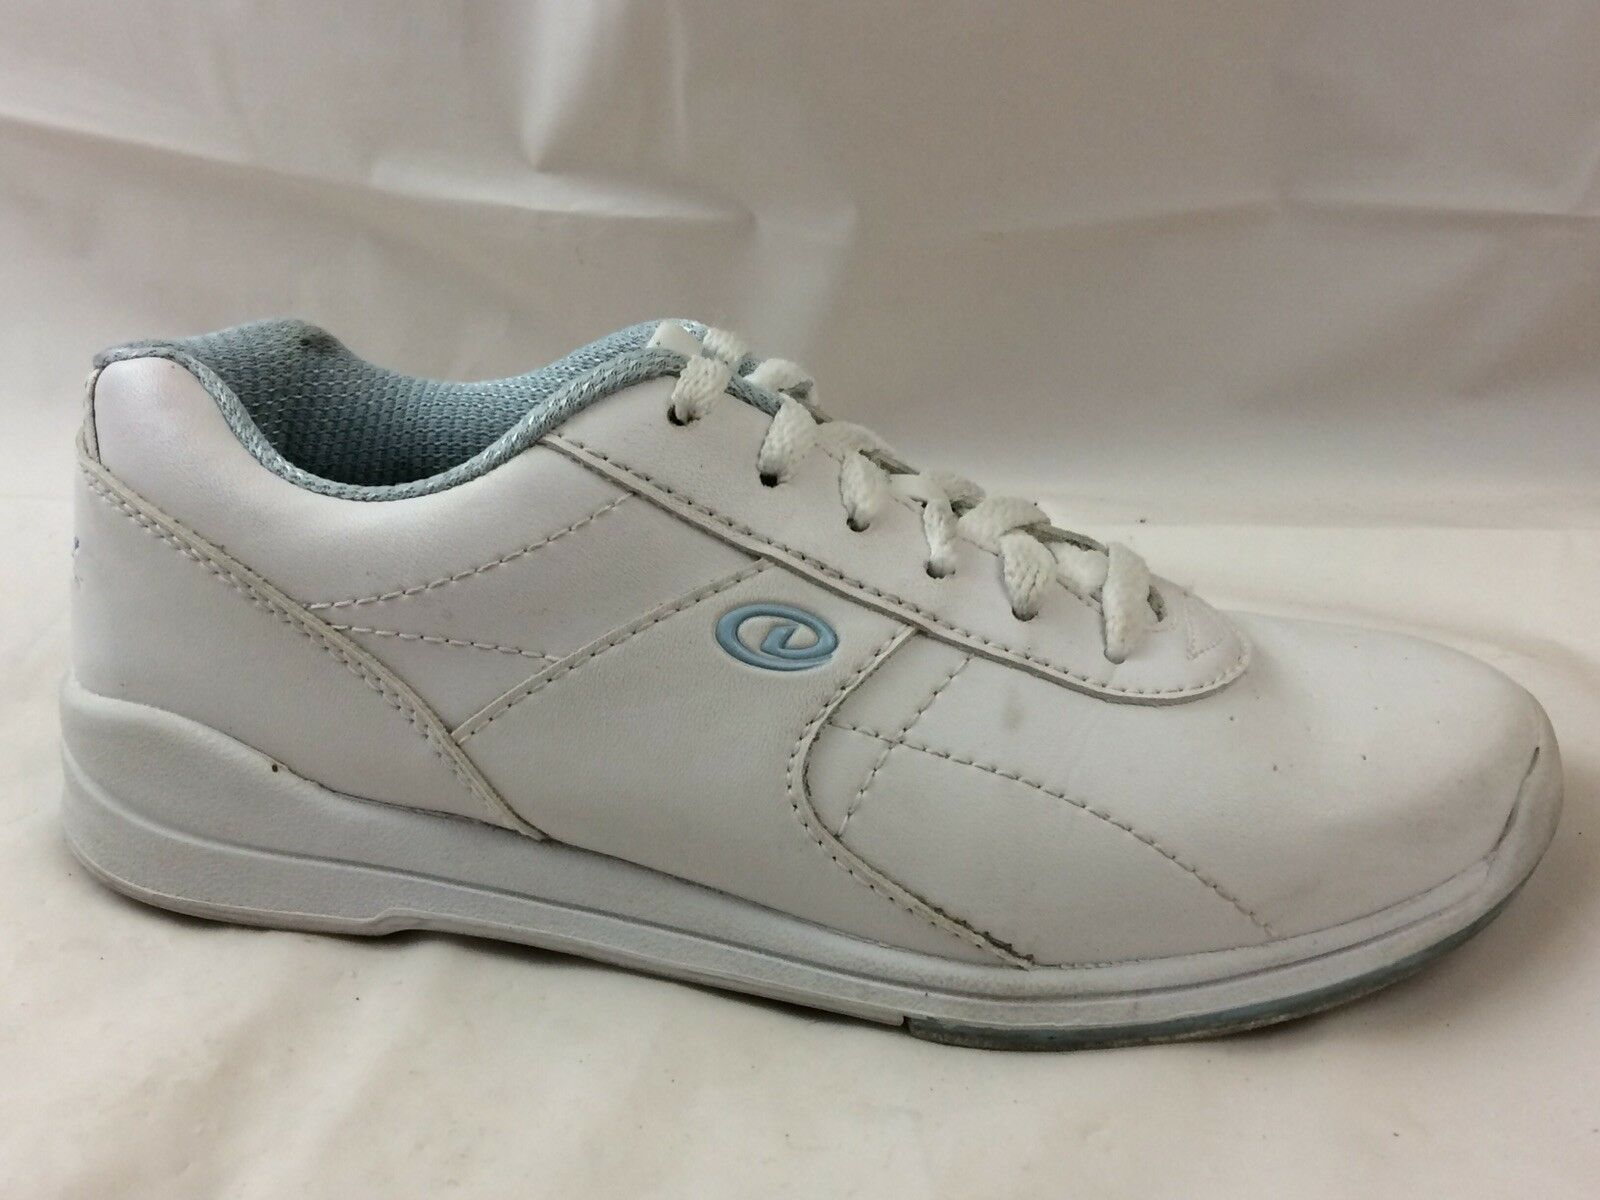 Dexter Raquel III Womens 6 Medium Bowling shoes Sneakers Faux Leather White bluee